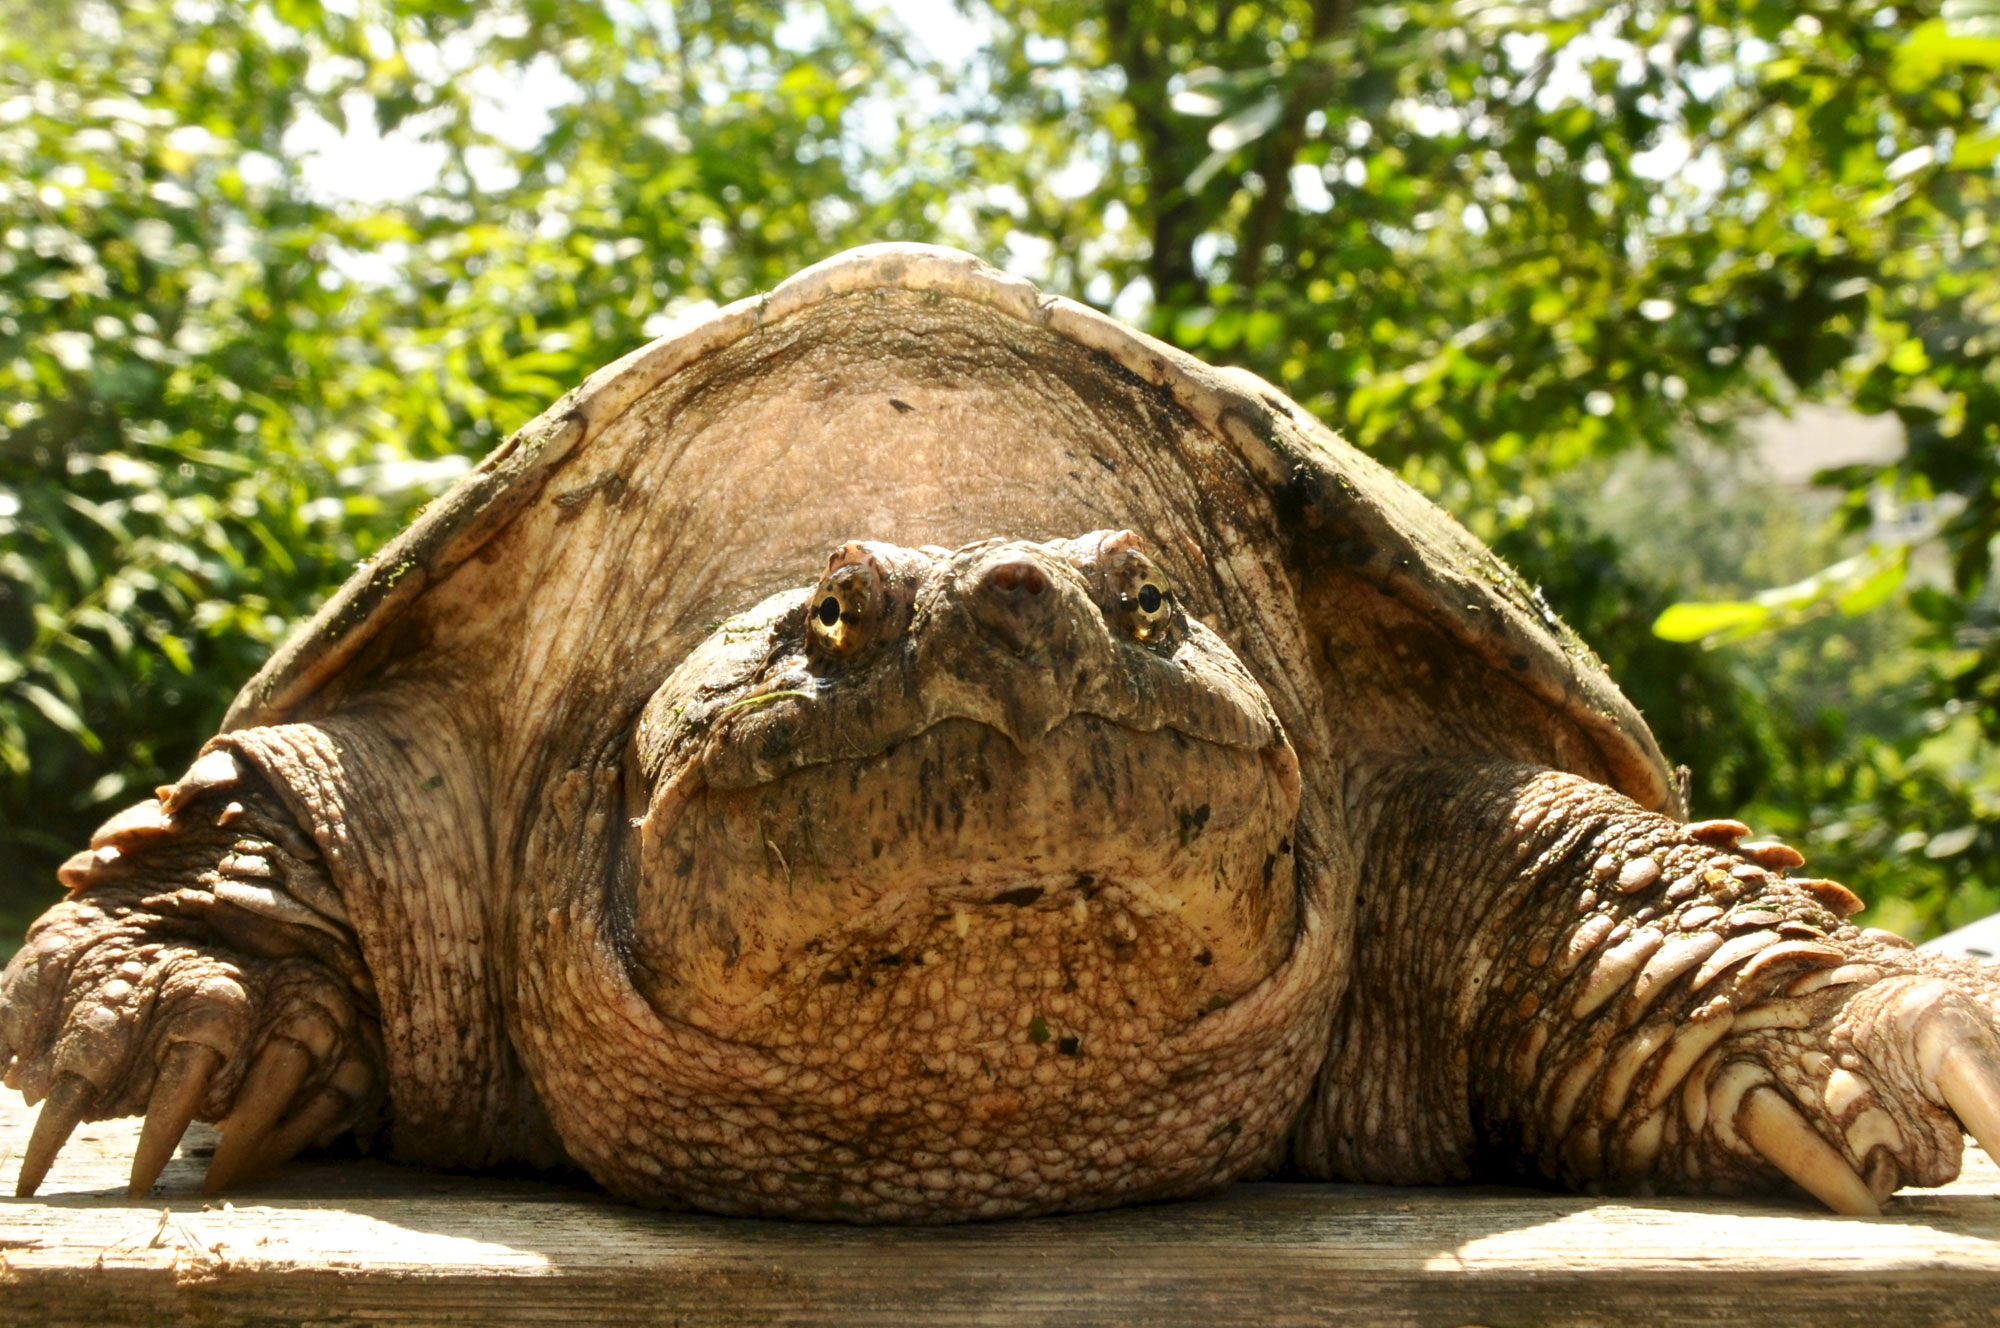 Common Snapping Turtle 111